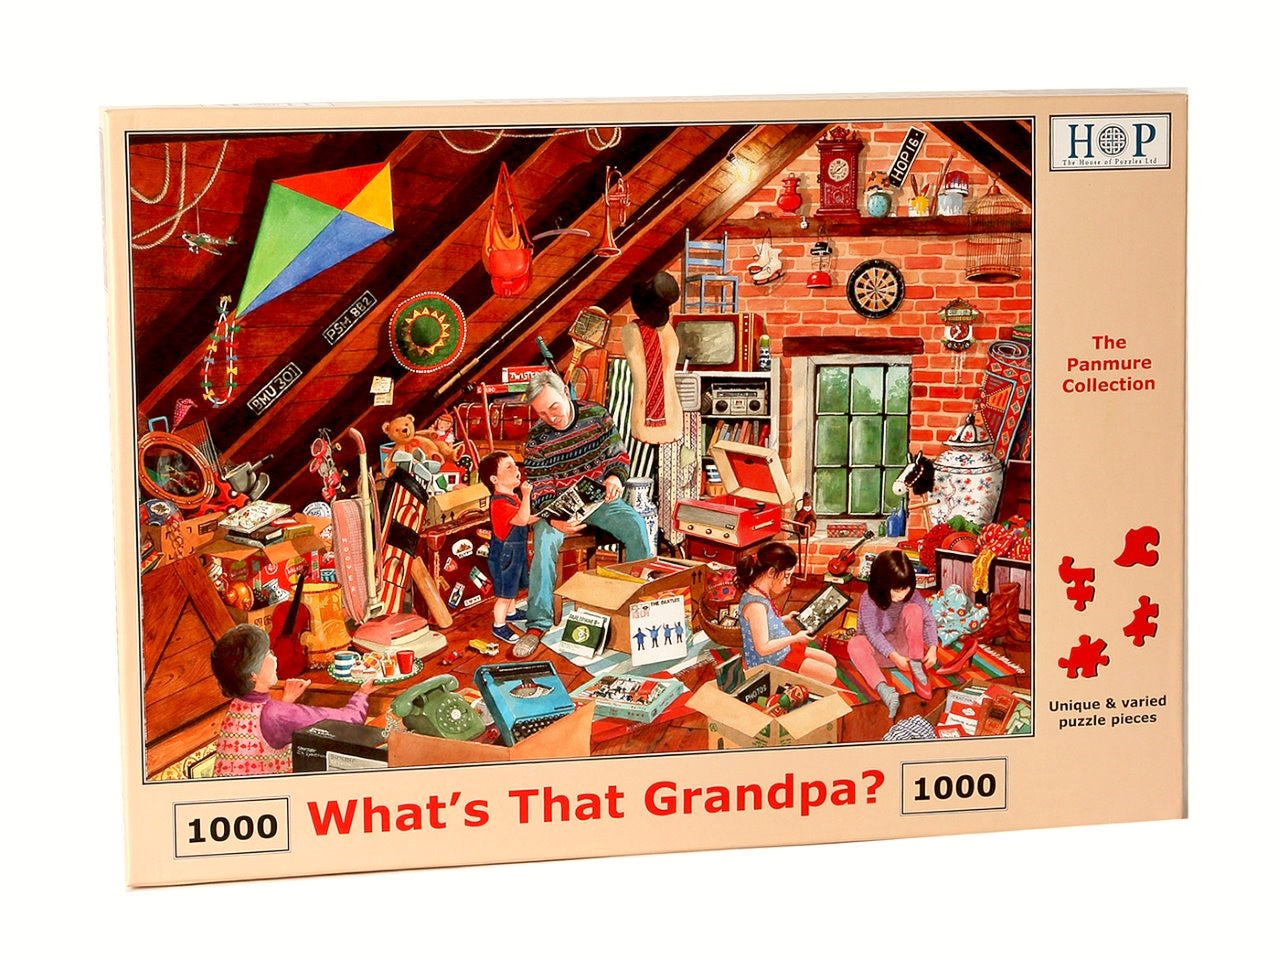 HOP What's That Grandpa 1000 Piece Jigsaw Puzzle